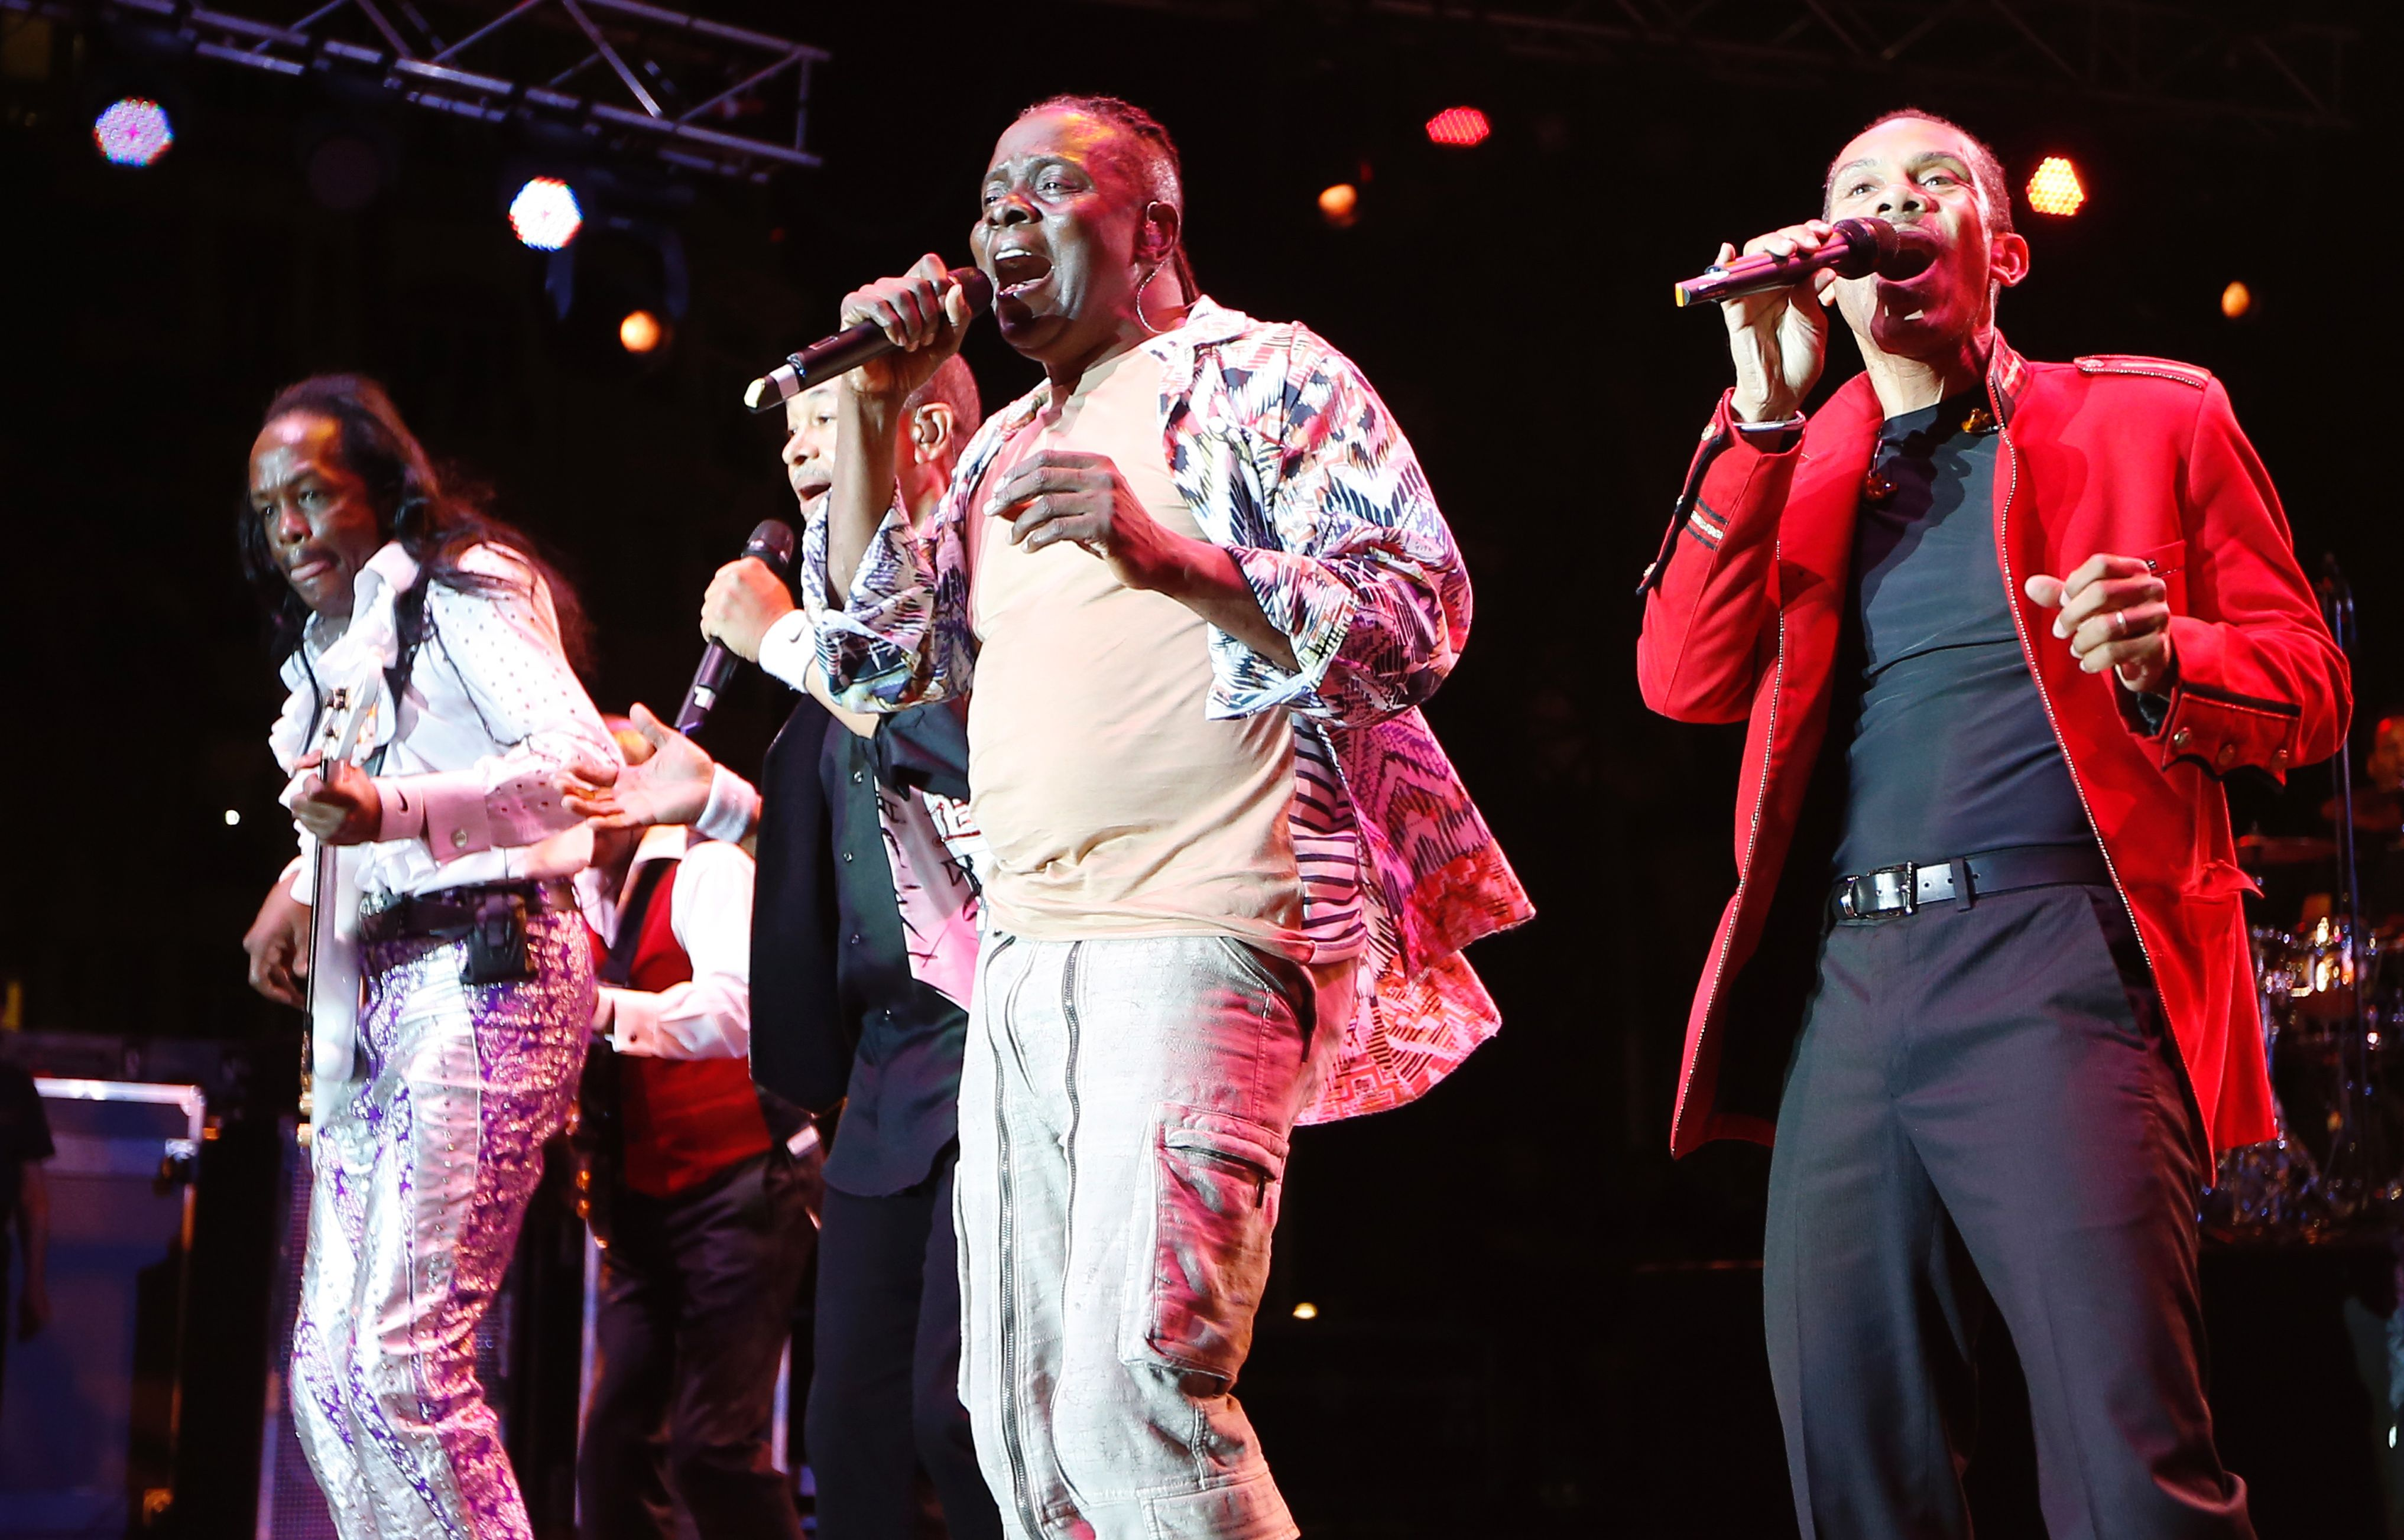 (FILES) This file photo taken on July 08, 2013 shows L-R) Verdine White, Ralph Johnson, Phillip Bailey and B. David Whitworth of Earth, Wind and Fire performing on stage at the Nice Jazz Festival,in Nice, southeastern France. Earth, Wind & Fire founder Maurice White, whose feel-good funk anthems packed arenas, broke down racial barriers and made him among his generation's best-selling artists died on February 4, 2016. He was 74. Brought up in Chicago, White saw himself as an heir to the jazz greats but developed a fresh sound of tight pop tunes that brought in elements of R&B, rock, soul and funk. / AFP / VALERY HACHEVALERY HACHE/AFP/Getty Images